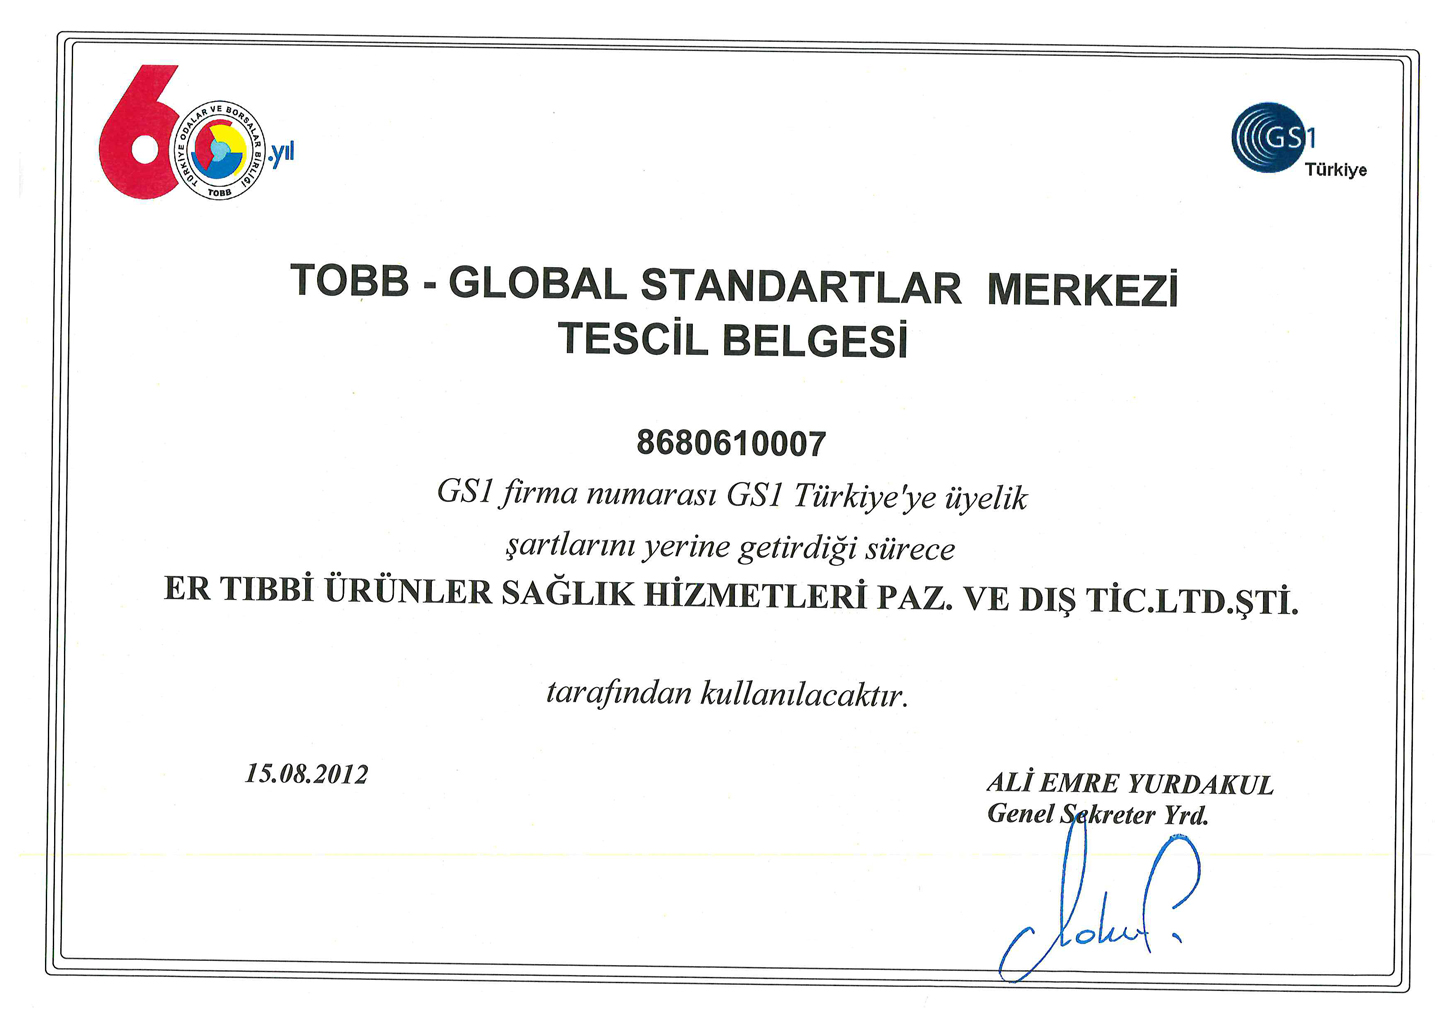 TOBB Registration Certificate